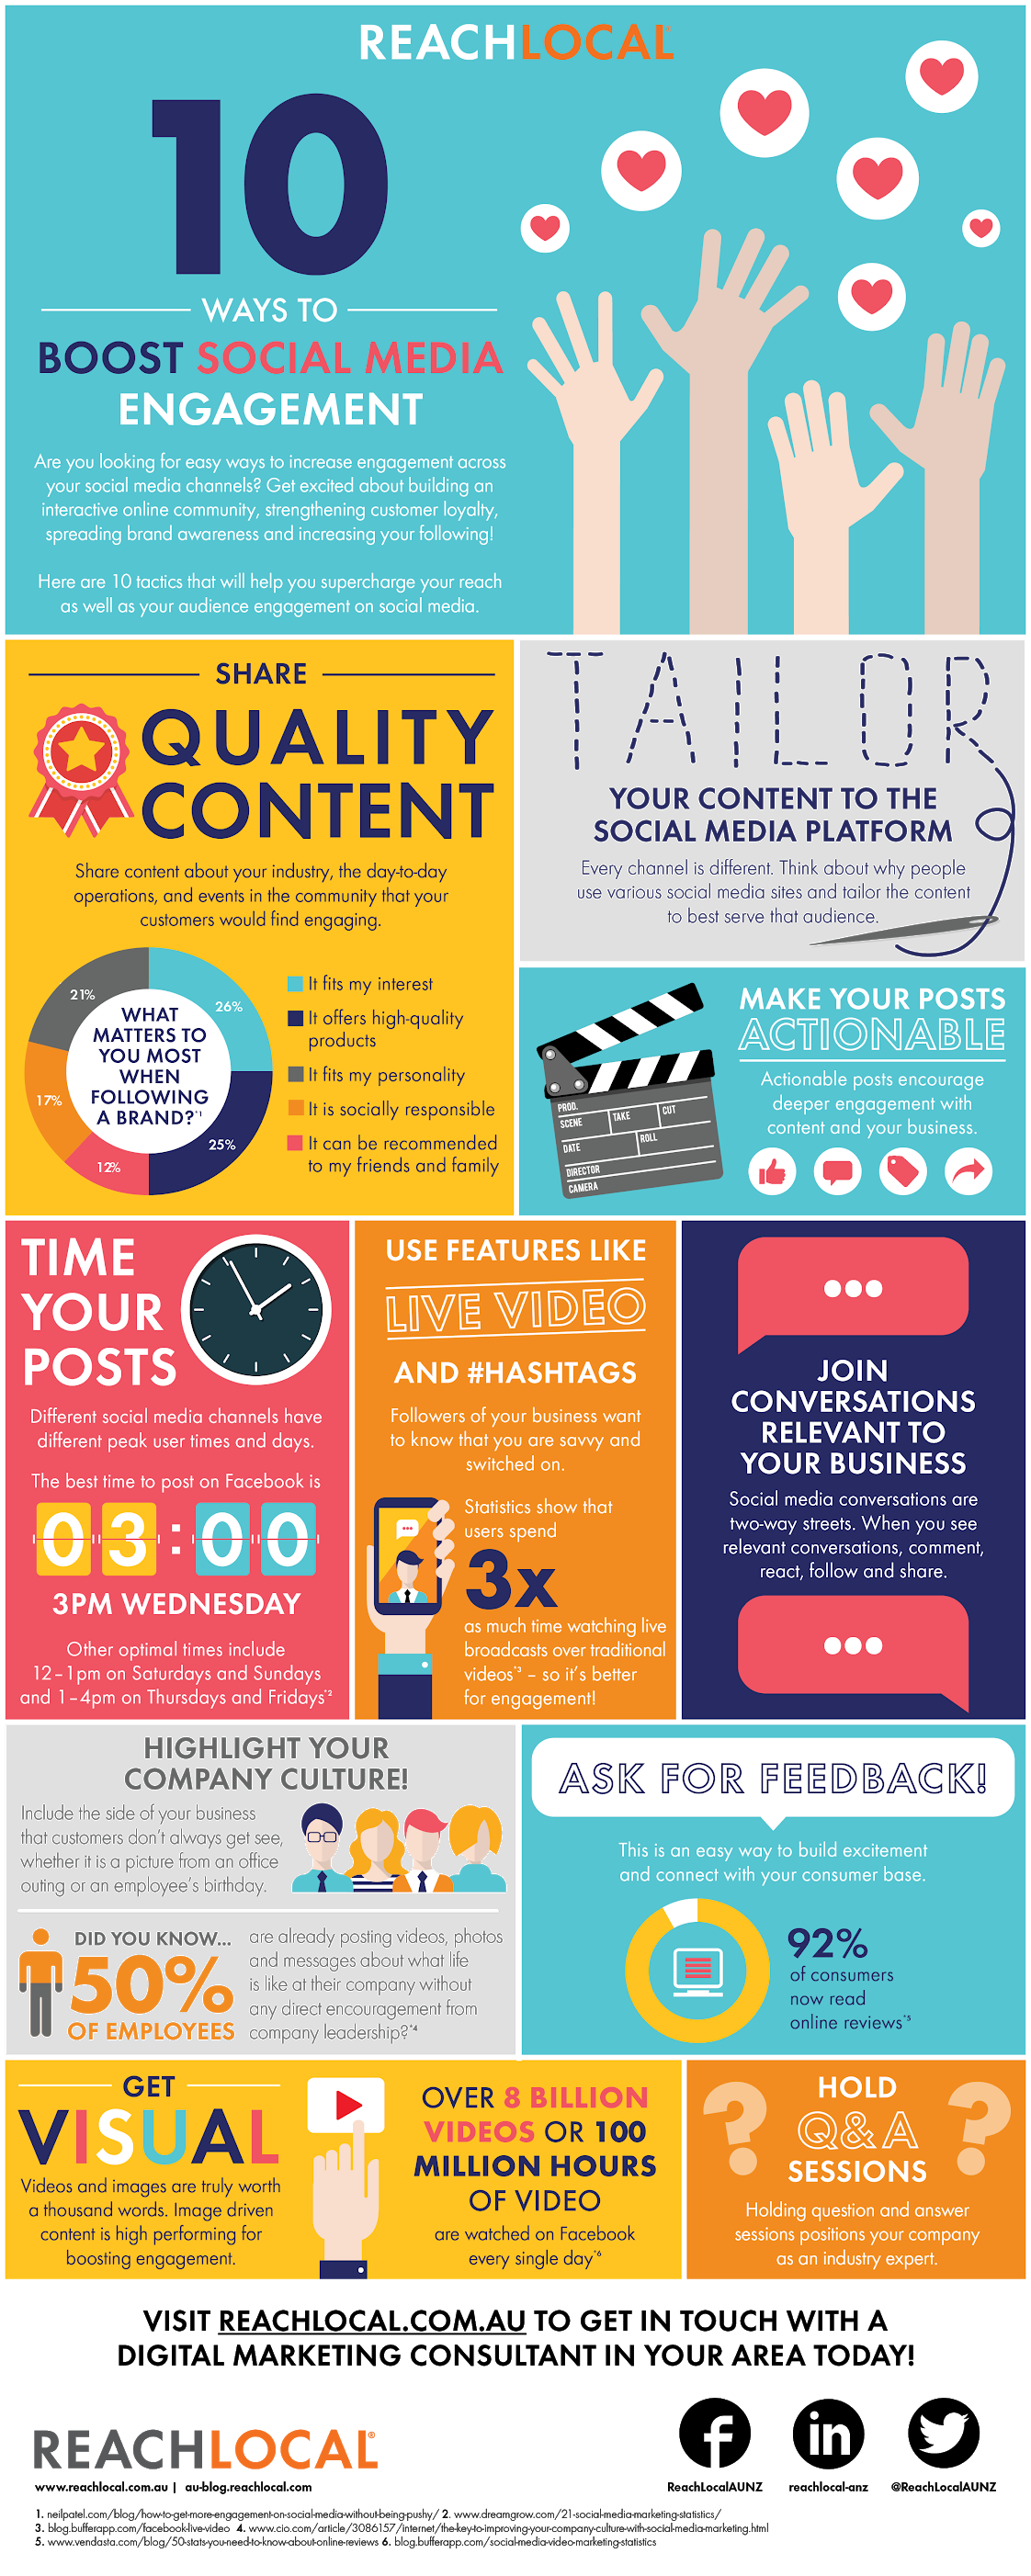 10 Ways to Boost Social Media Engagement #infographic